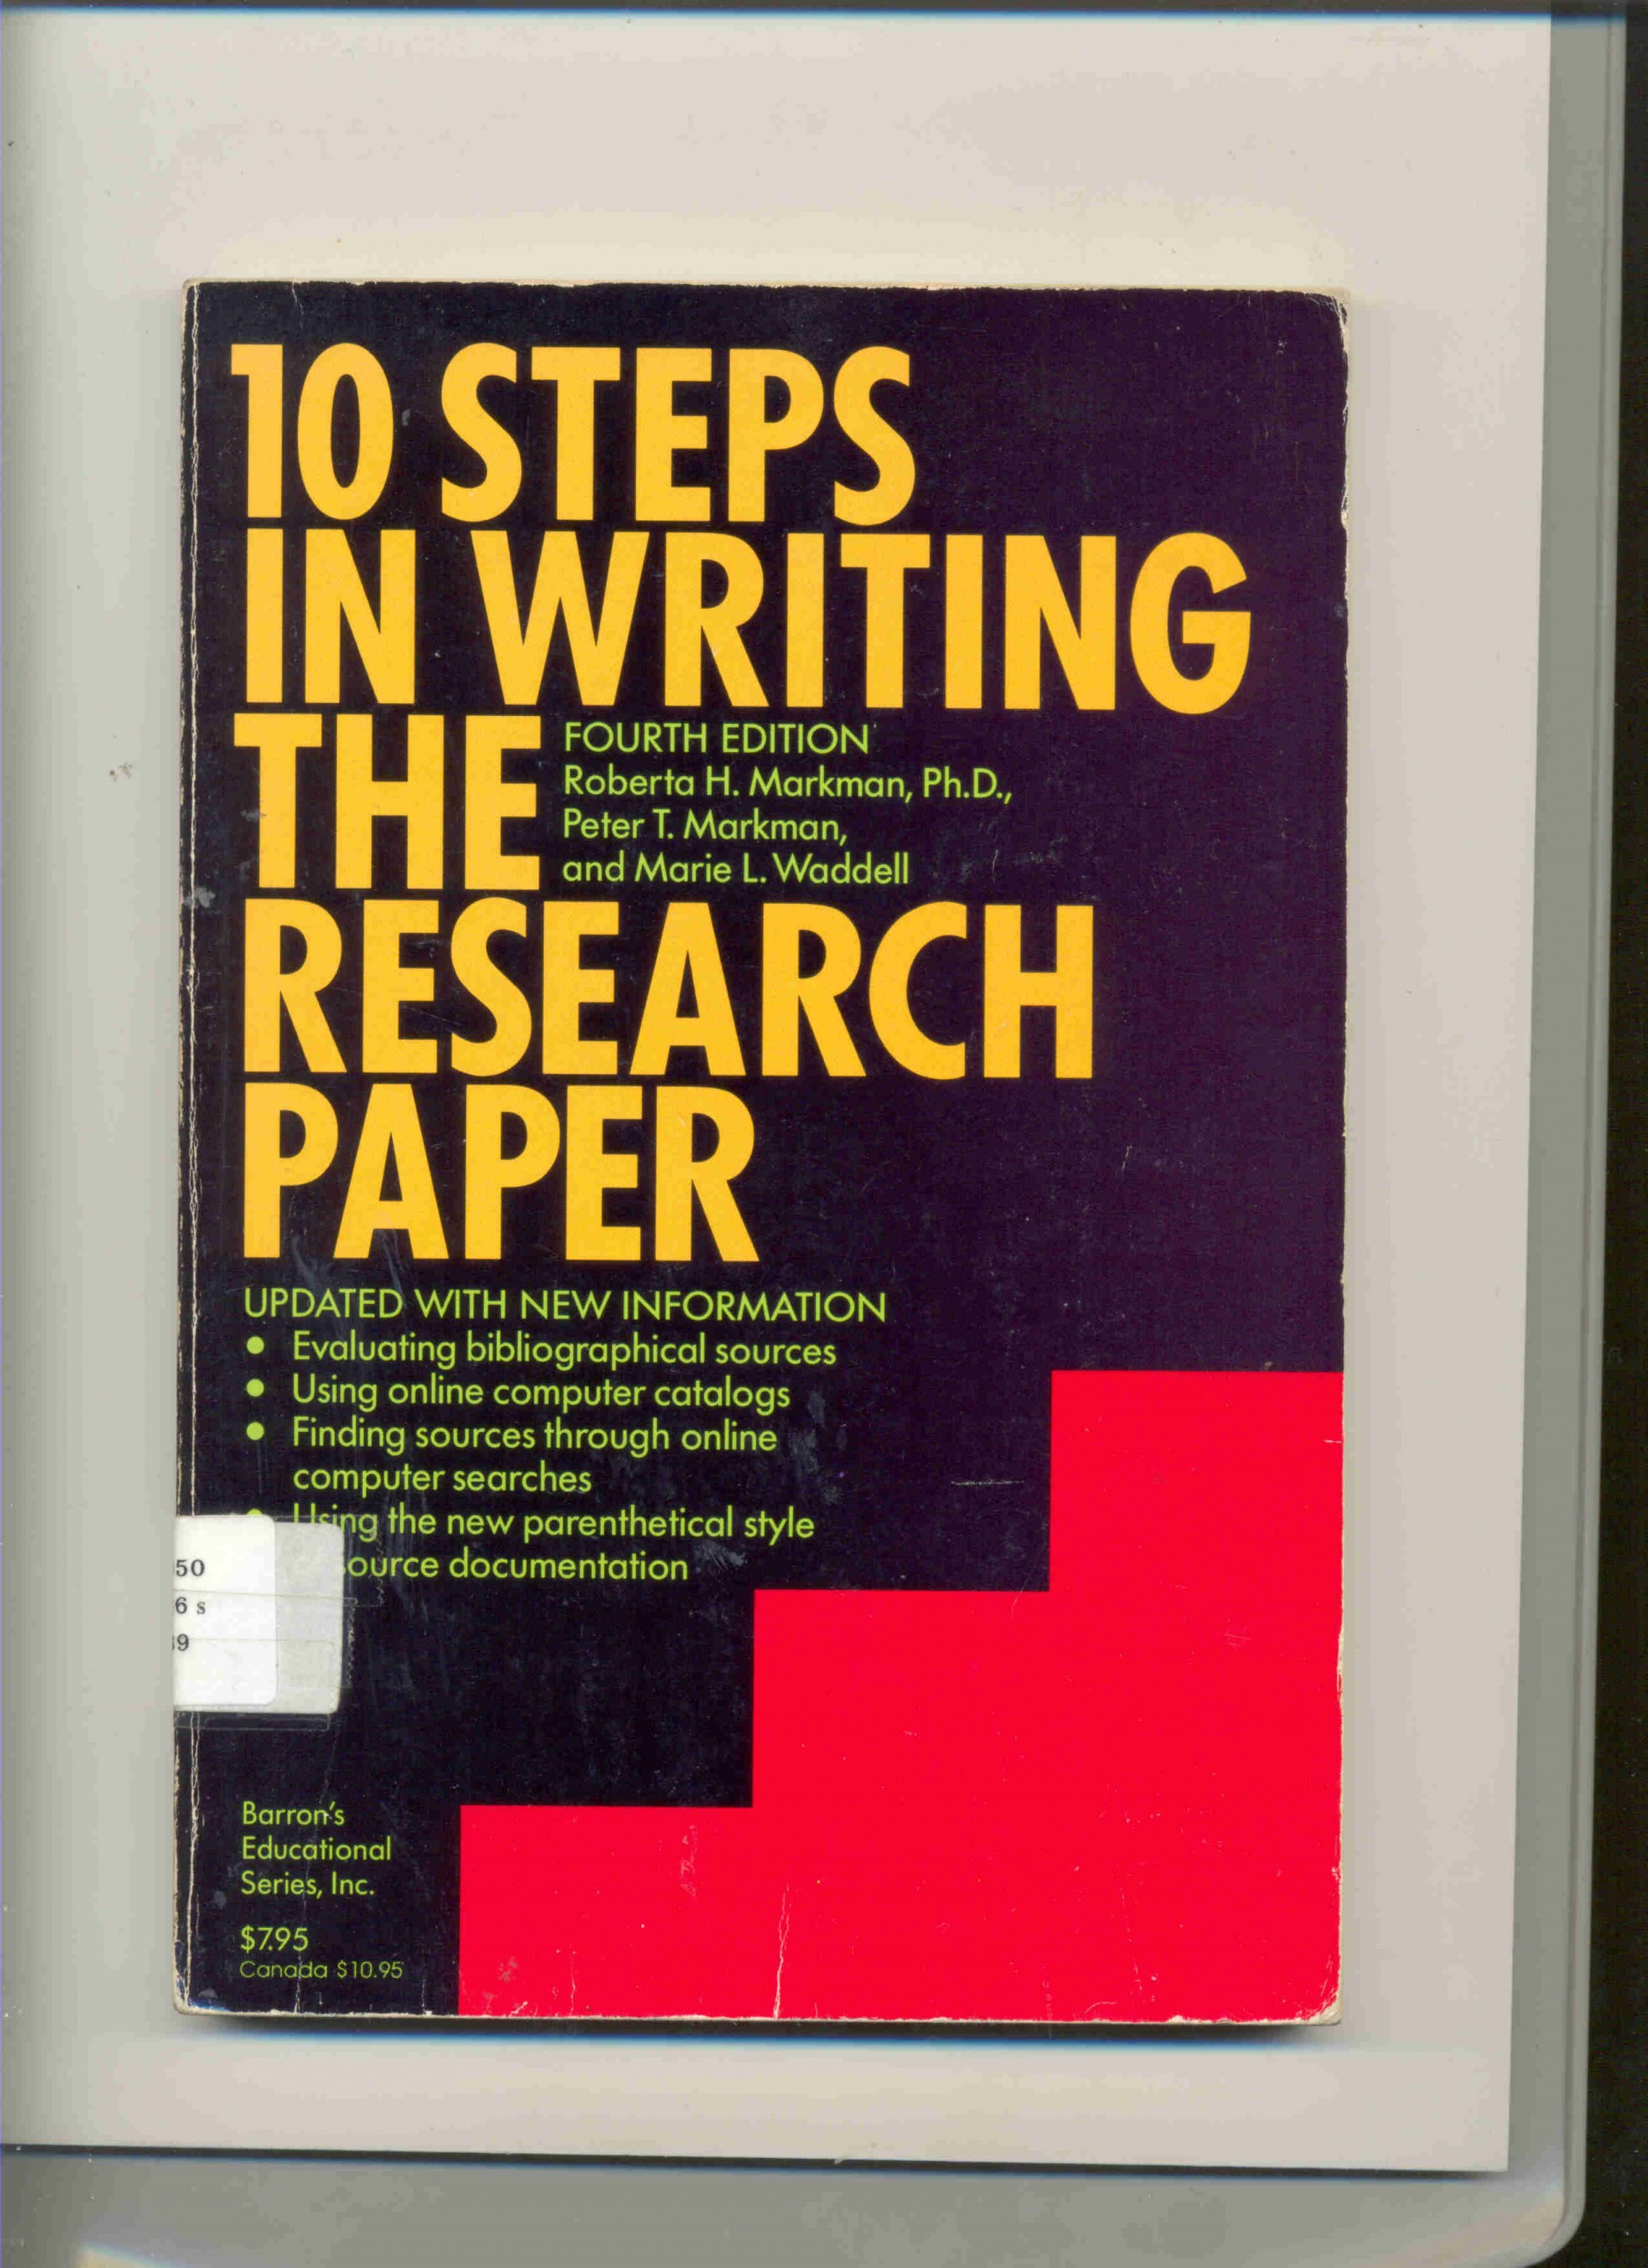 009 Steps In Writing The Research Paper Markman 1633 1 201011053654 Awful 10 Pdf 1920